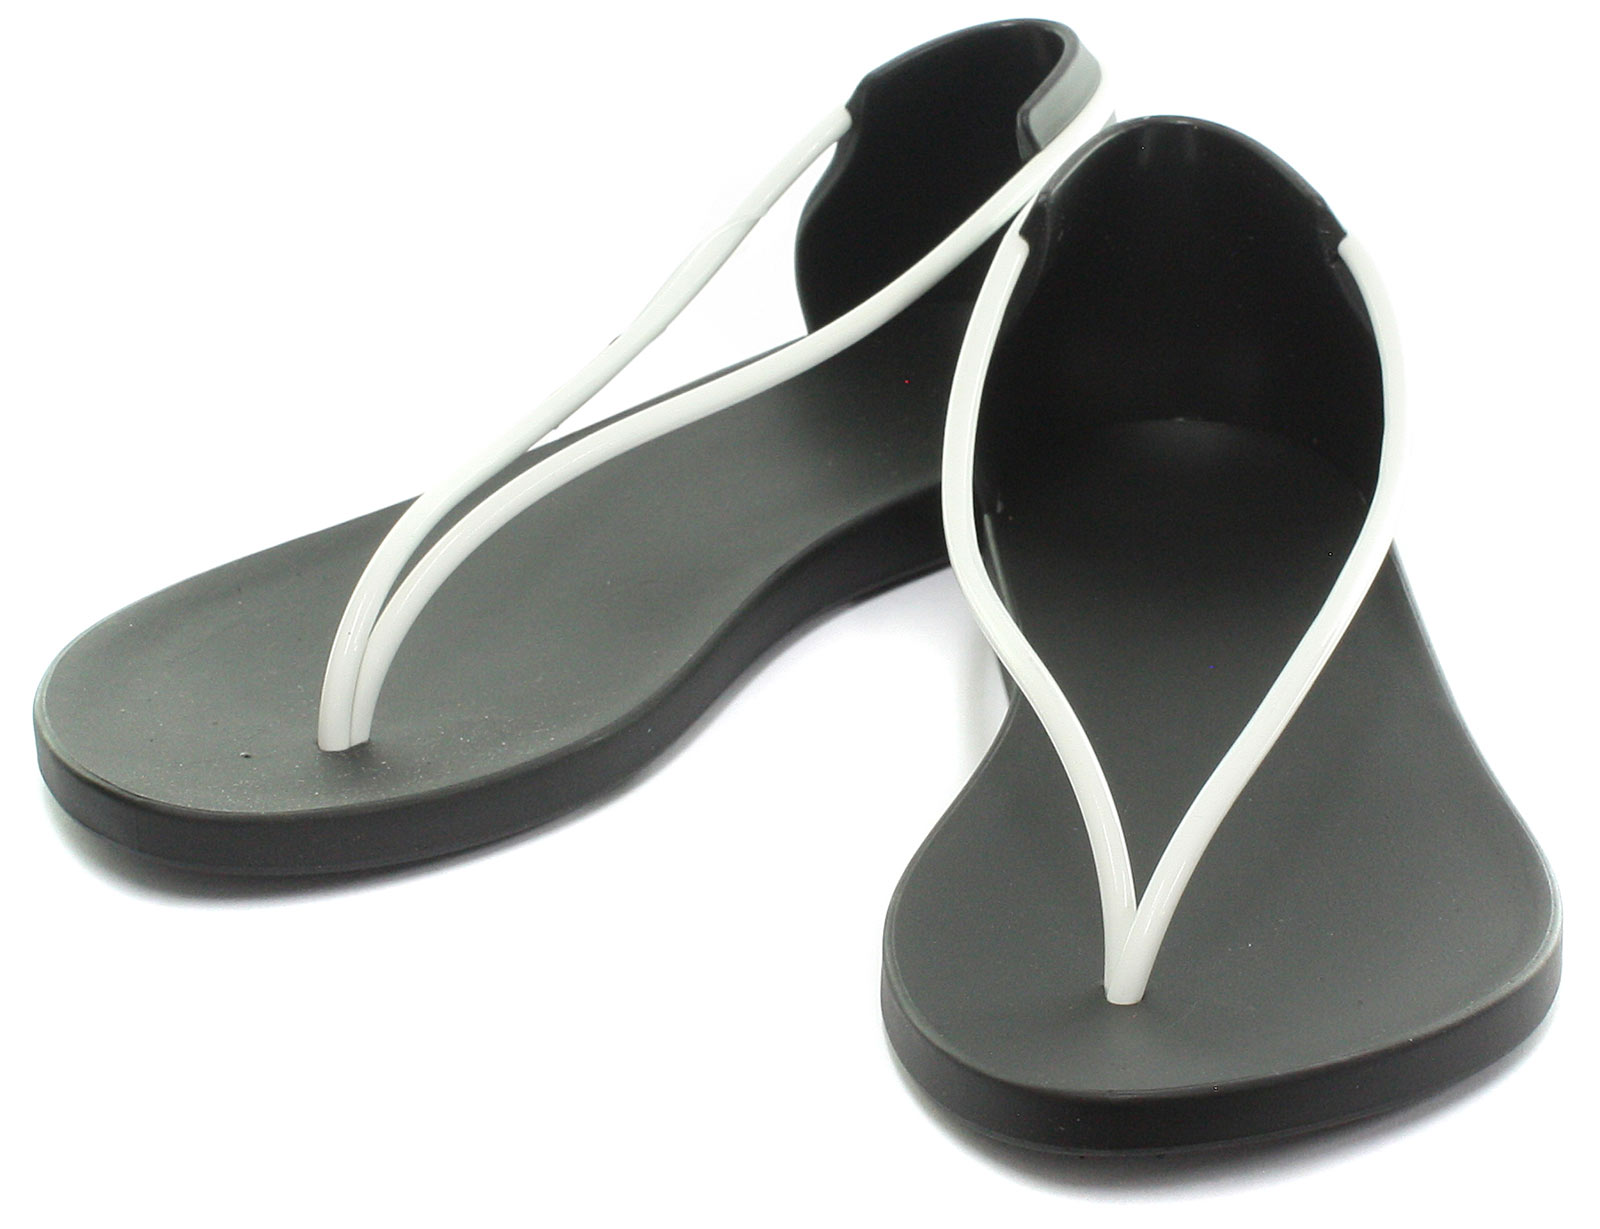 42d222dccca 1 of 6FREE Shipping Ipanema Brasil Starck Thing N Blk Wht Womens Thong  Sandals ALL SIZES